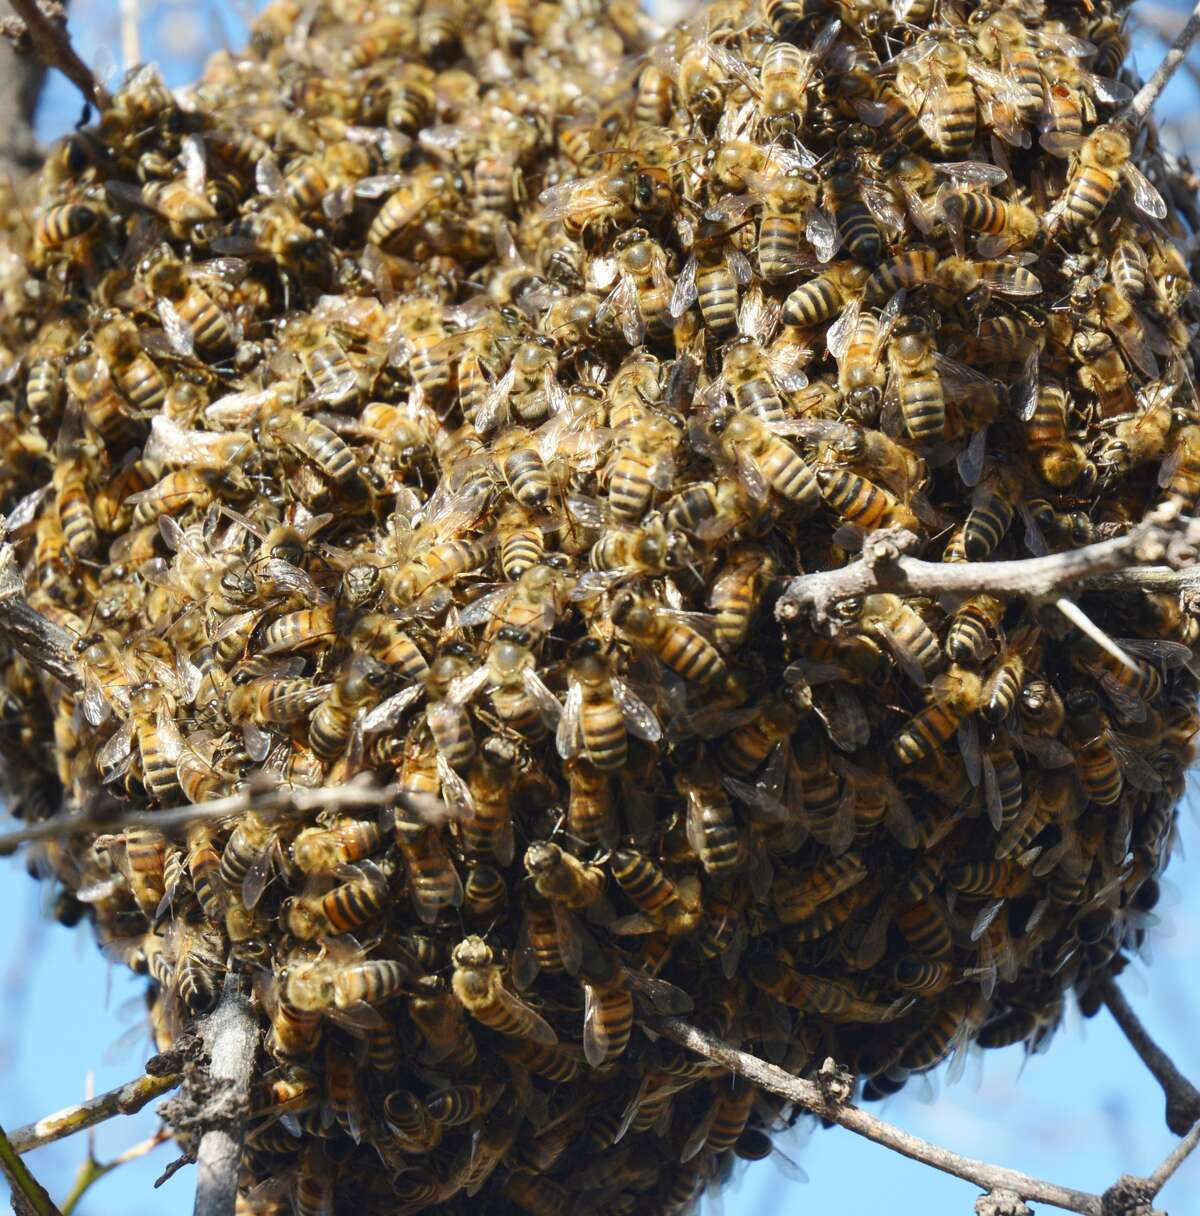 A swarm of honey bees high atop a mesquite tree in West Texas.